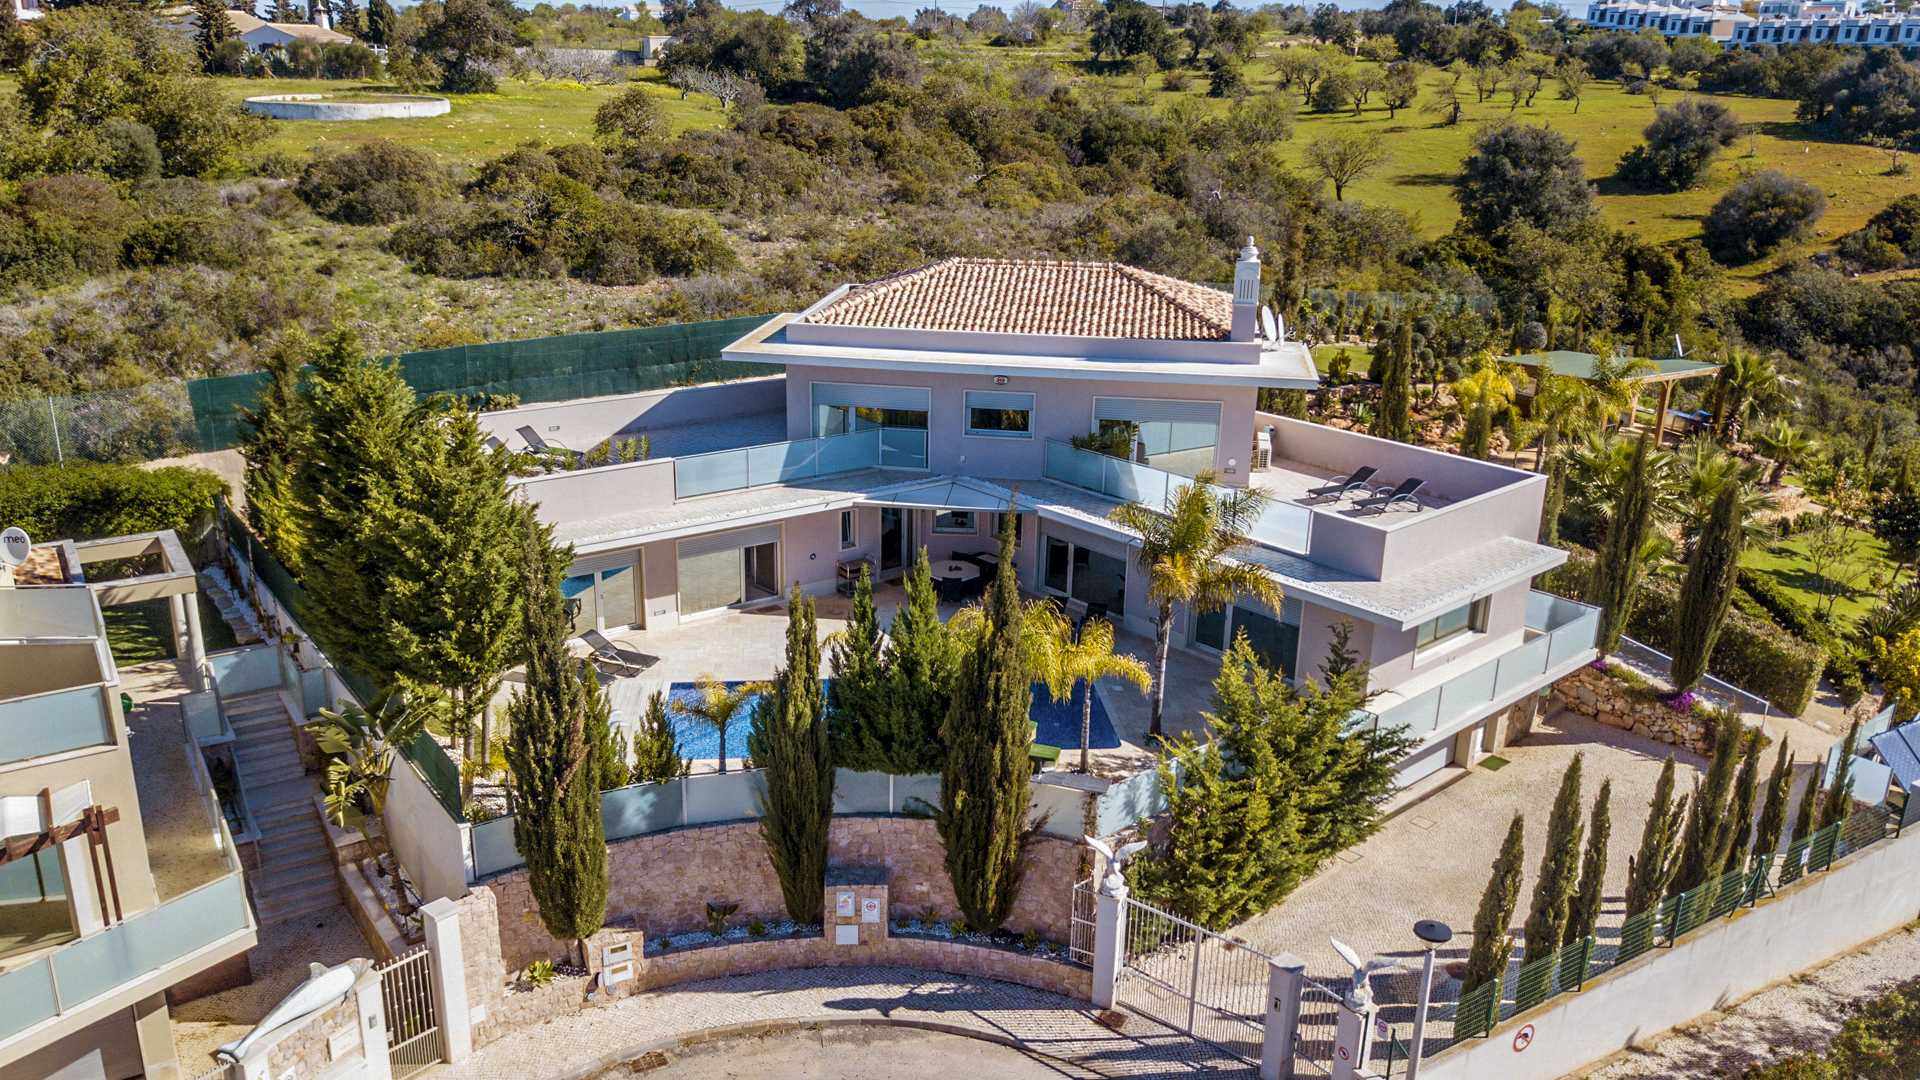 Immaculate very modern 4 Bedroom High Spec Villa with Sea Views, near Albufeira | VM1021 Modern 4 bedroom villa with saltwater pool and sea views. The villa is located less than 2km from beaches and only a few minutes from all amenities.